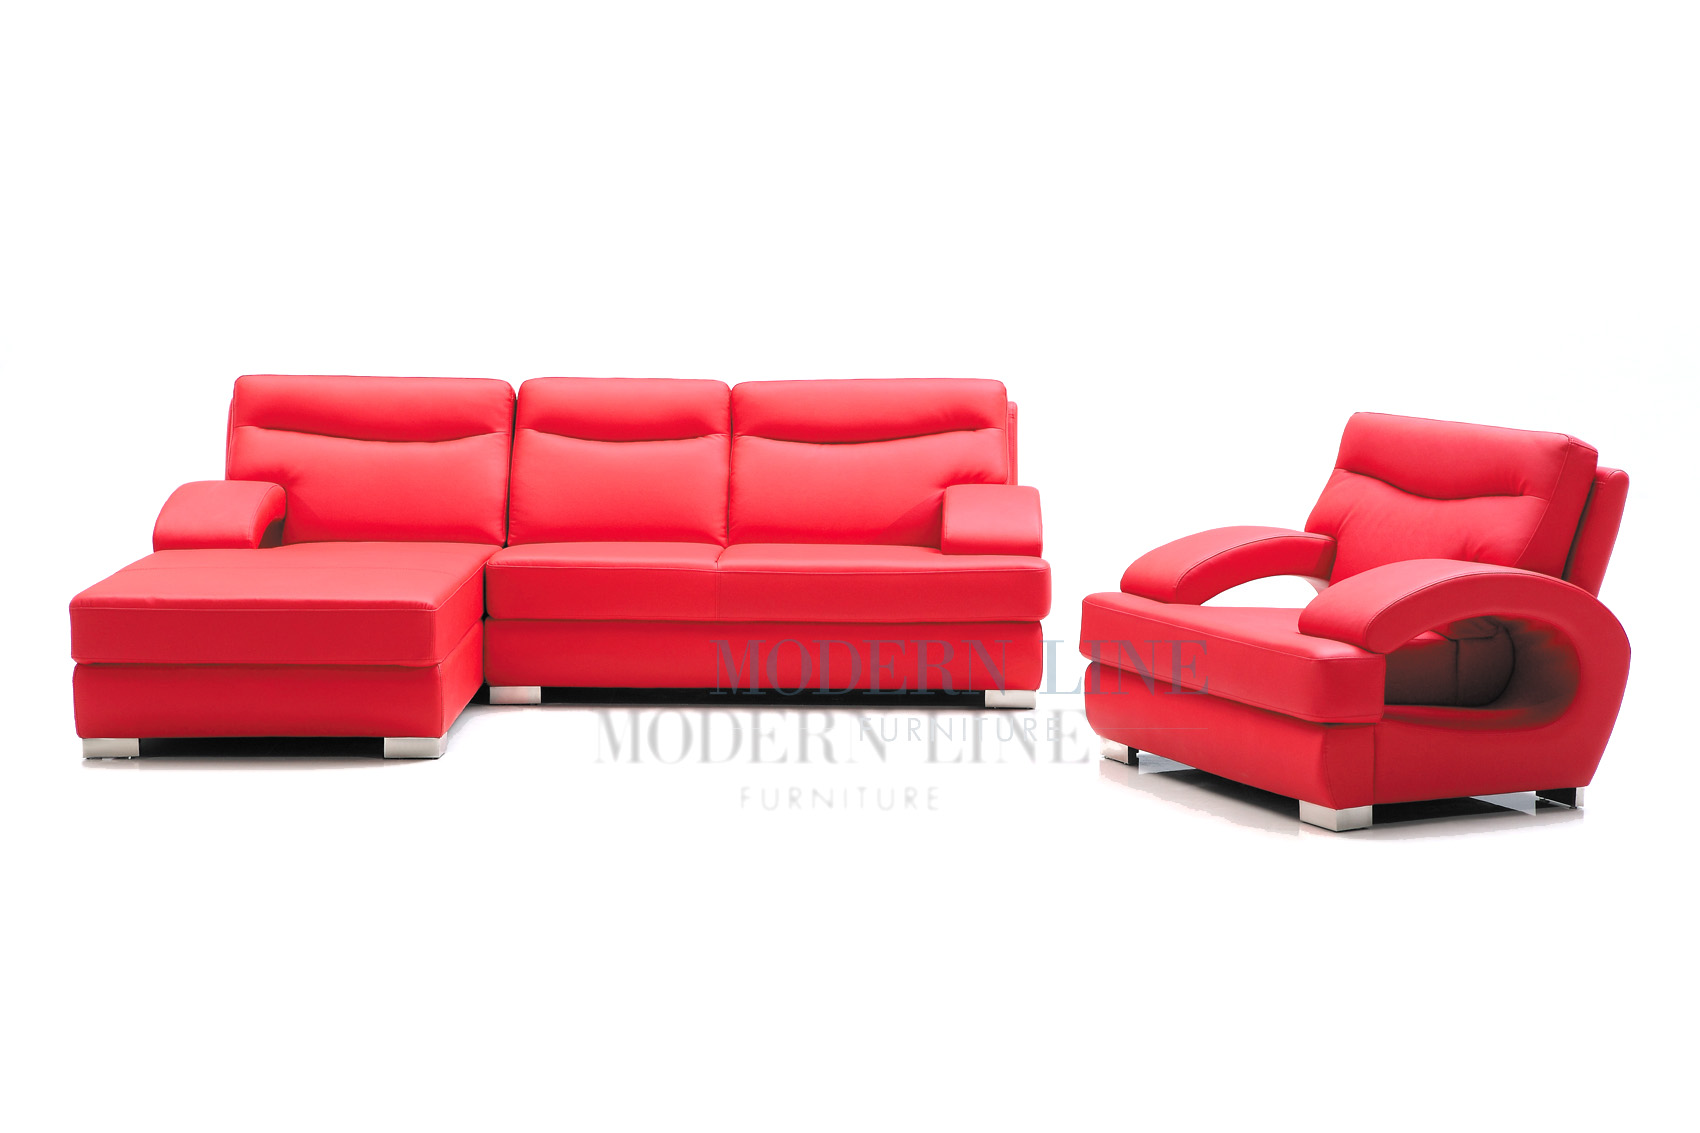 Modern Line Furniture mercial Furniture Custom Made